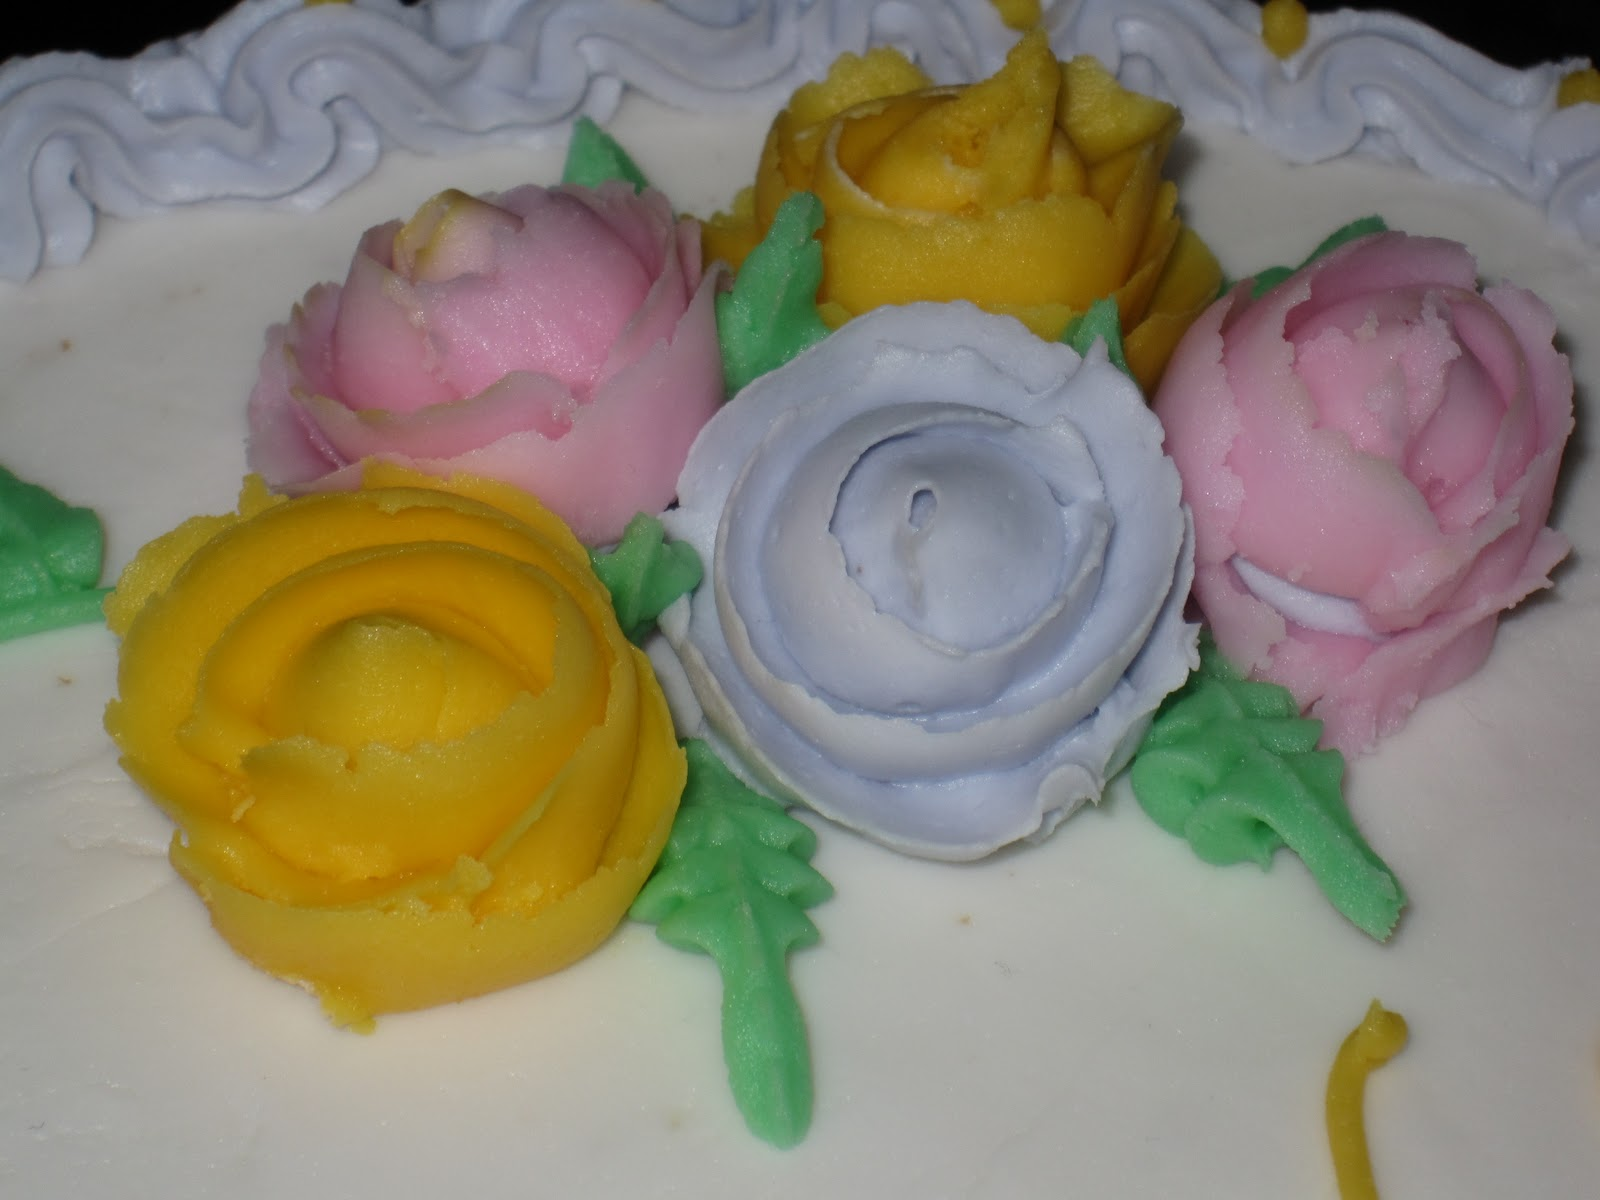 Michael\'s Basic Cake Decorating Class - Day 4 - She Bakes Here